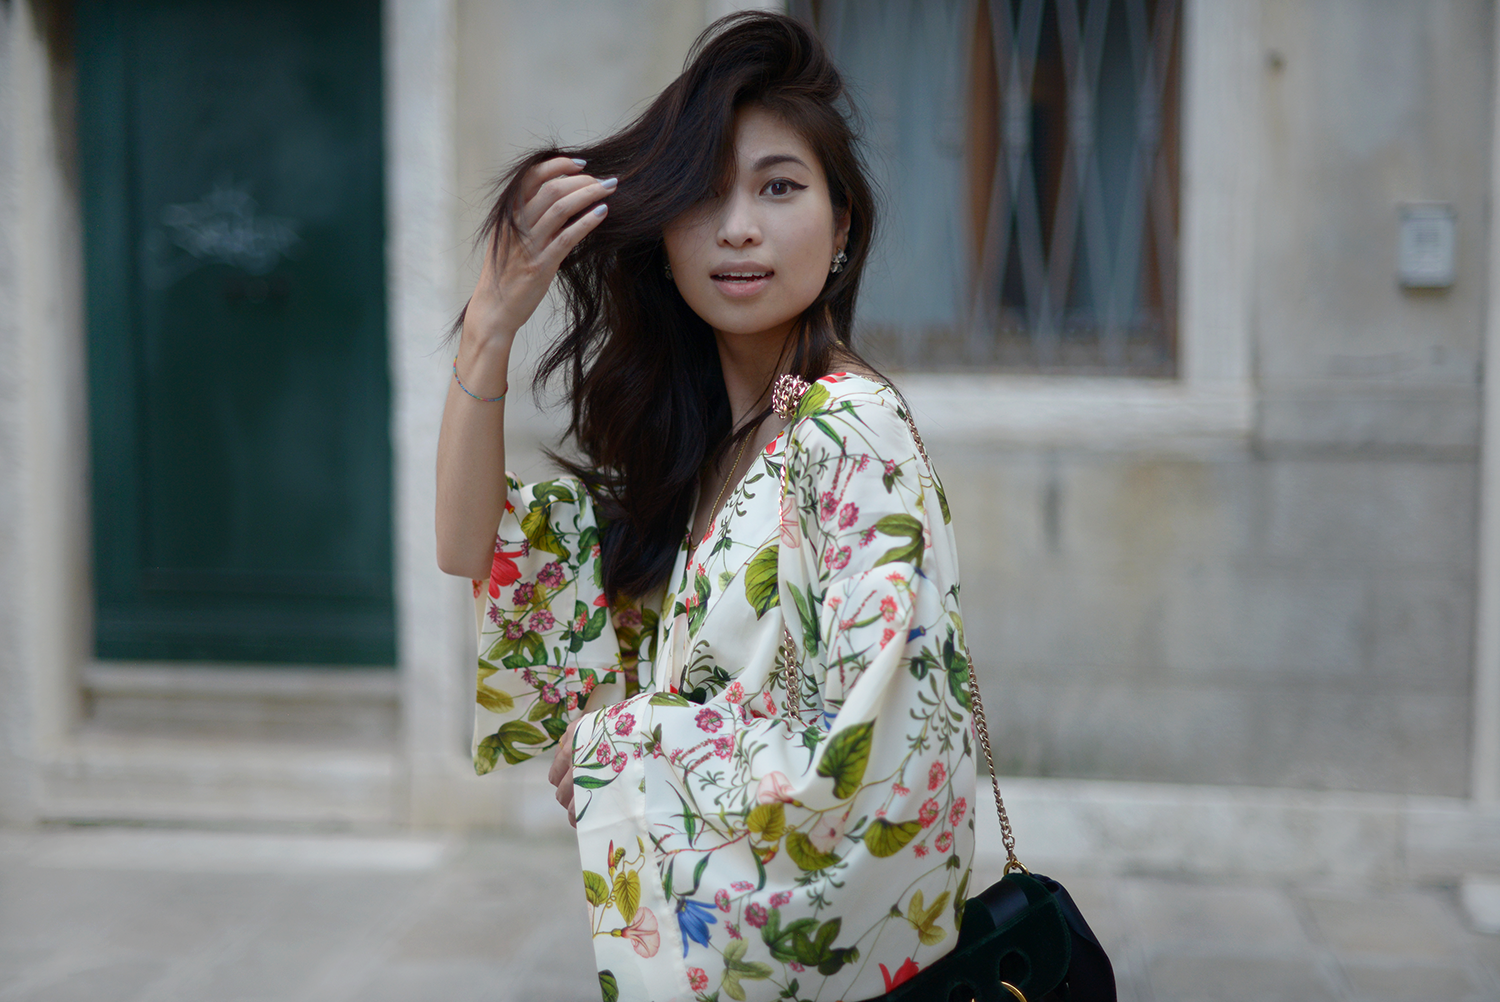 Tropical Printed Kimono with J.W Anderson Mini Green Velvet Pierce Bag in Venice Italy / FOREVERVANNY.com